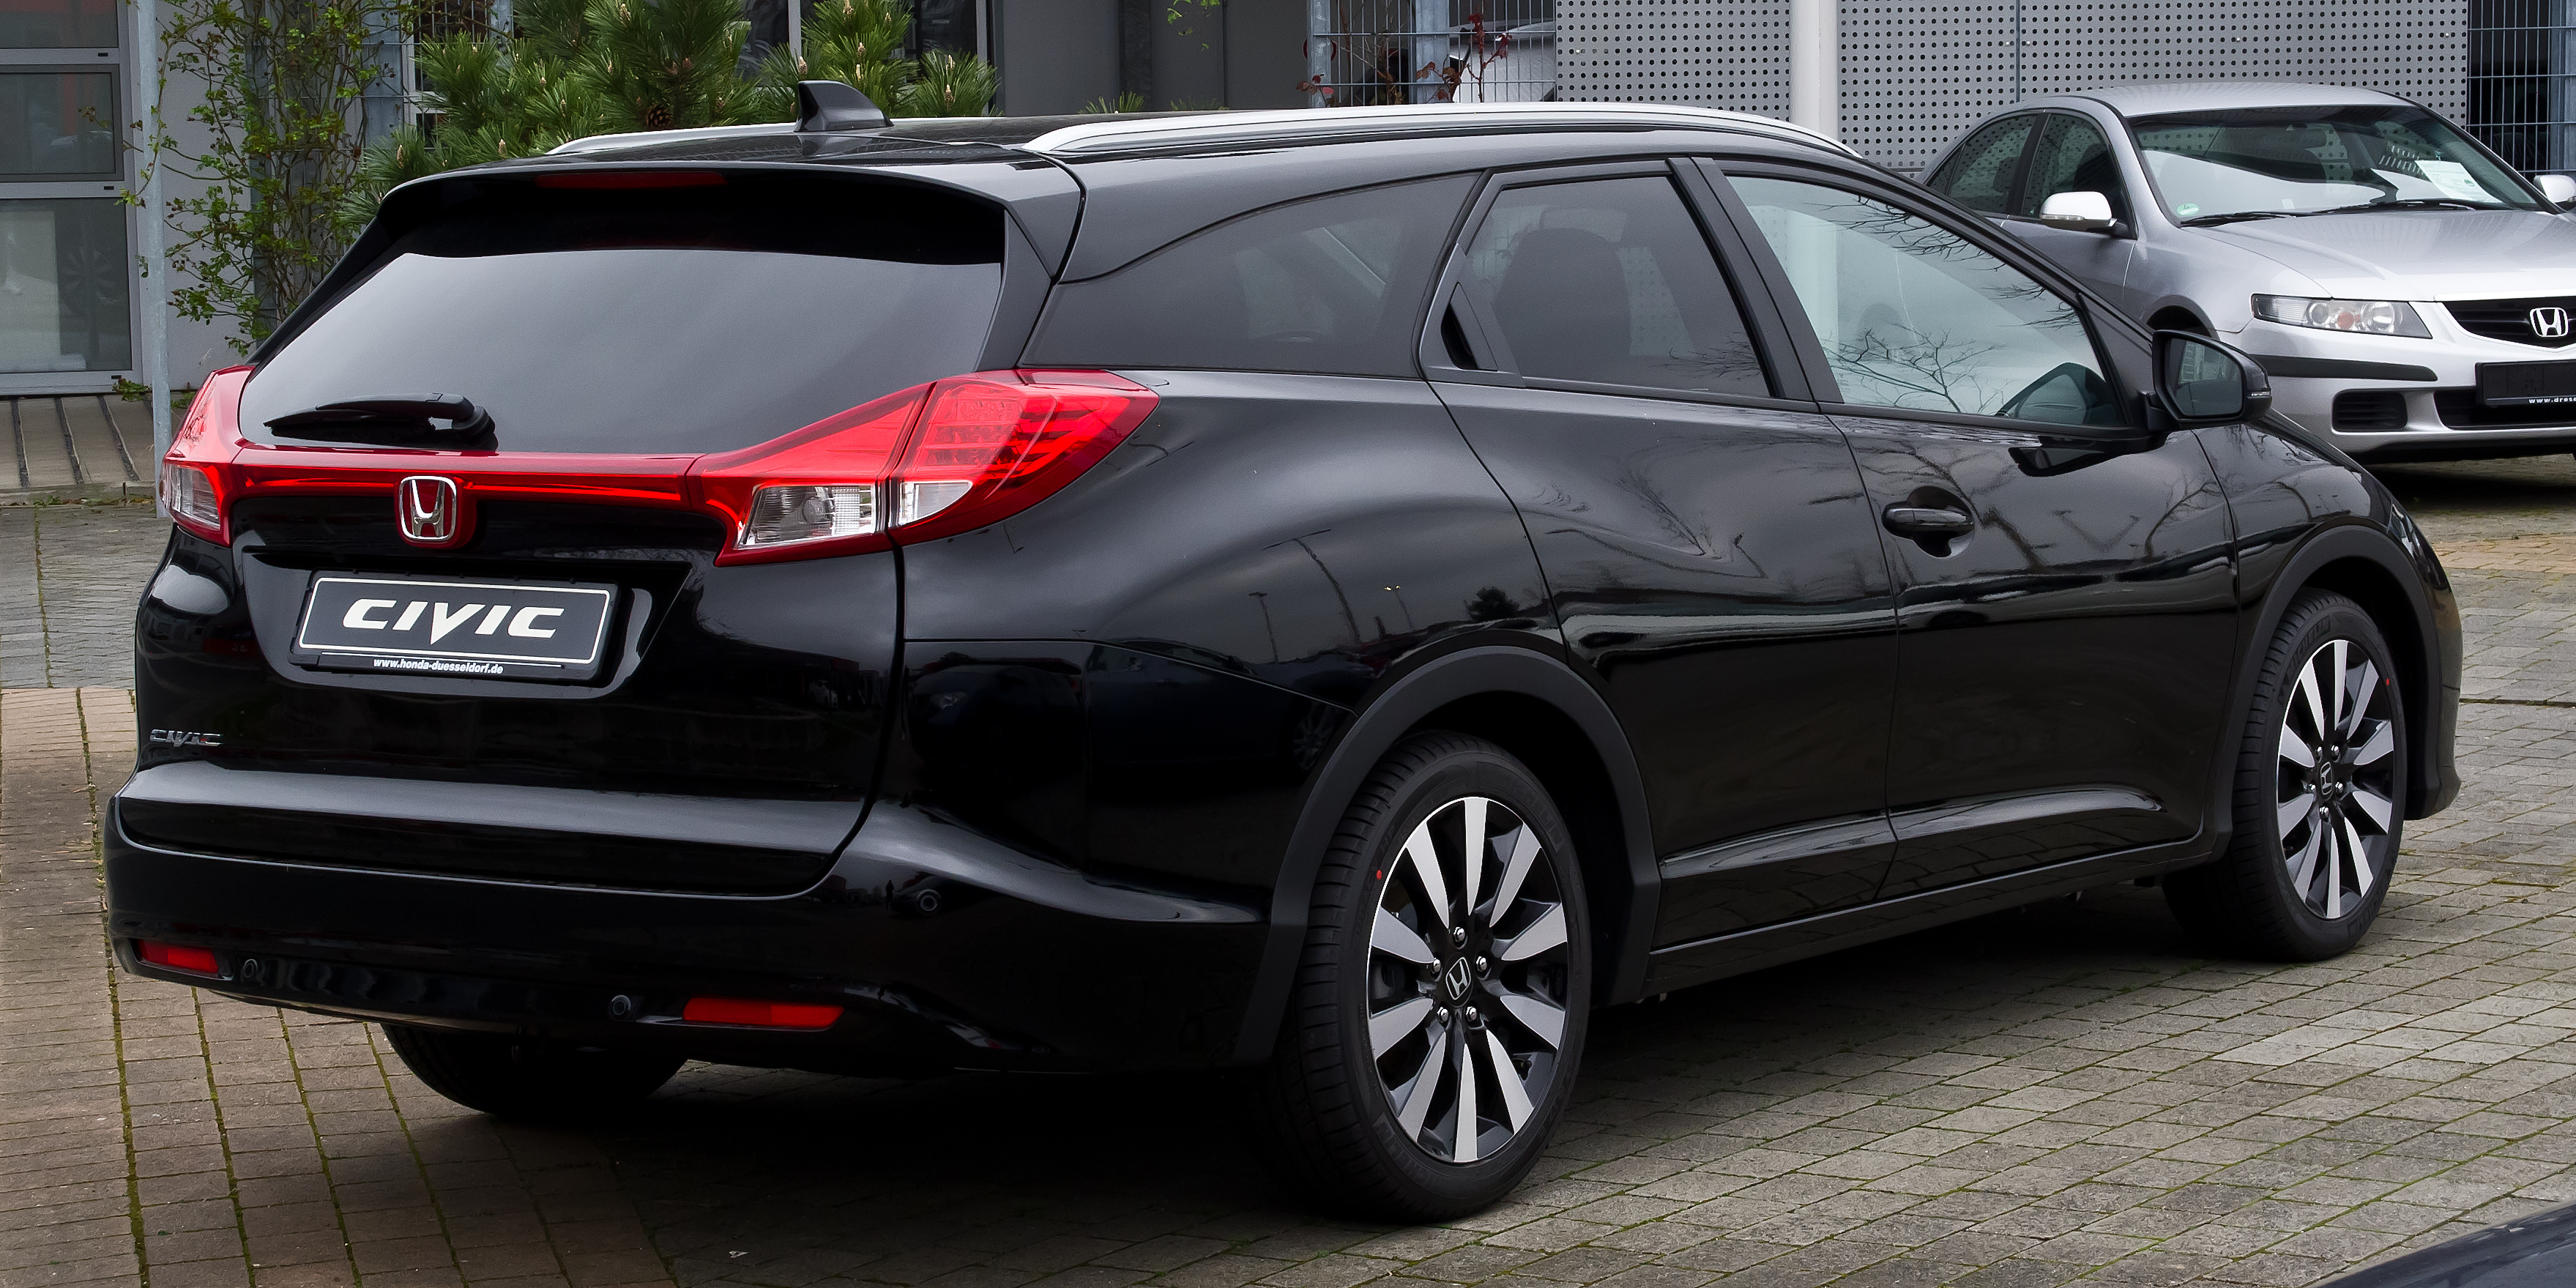 Honda Civic Tourer >> File Honda Civic Tourer Ix Heckansicht 16 Marz 2014